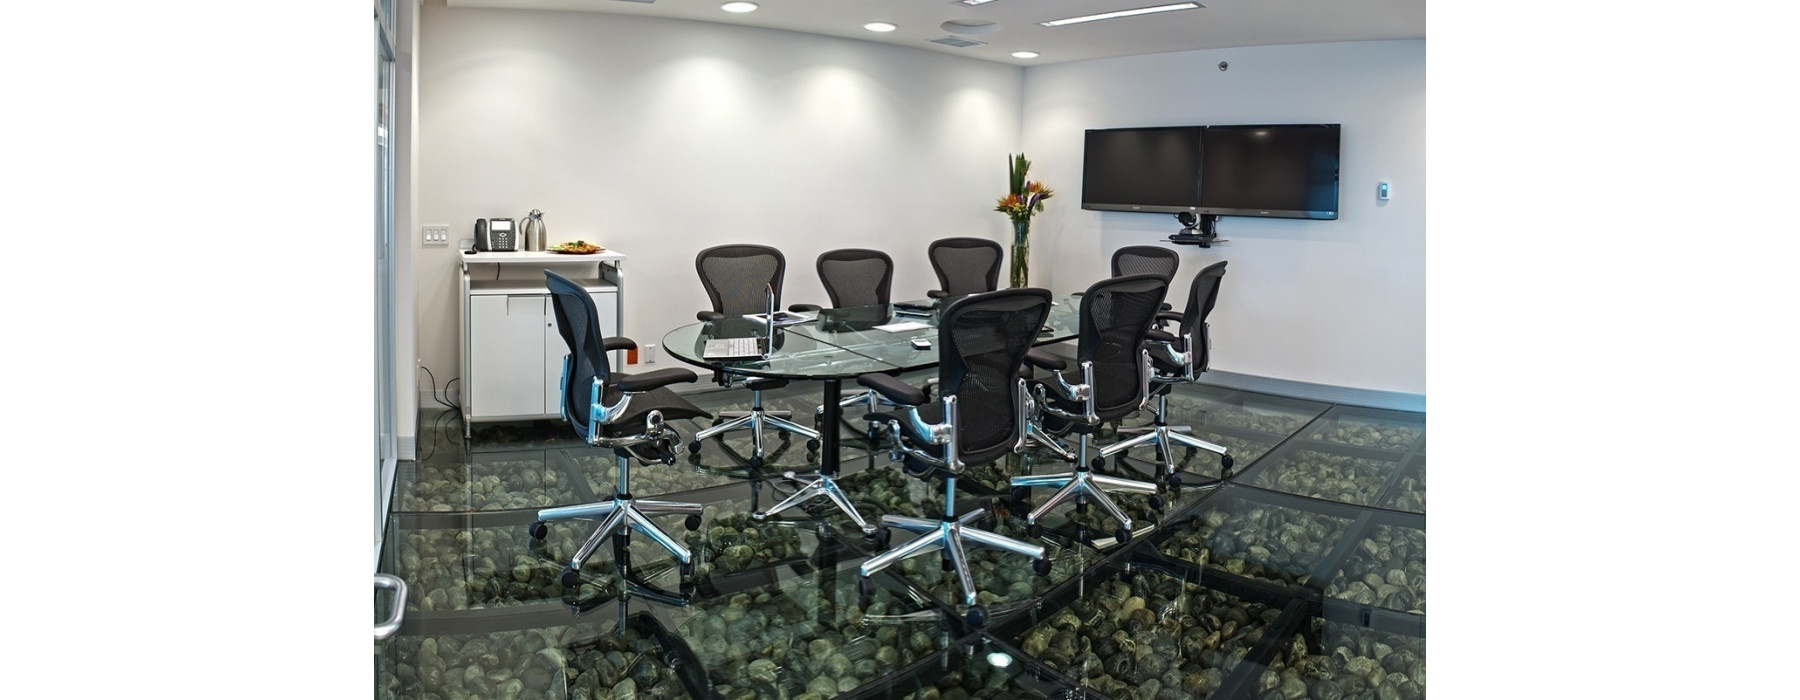 Mexico City - Torre Murano - Meeting rooms